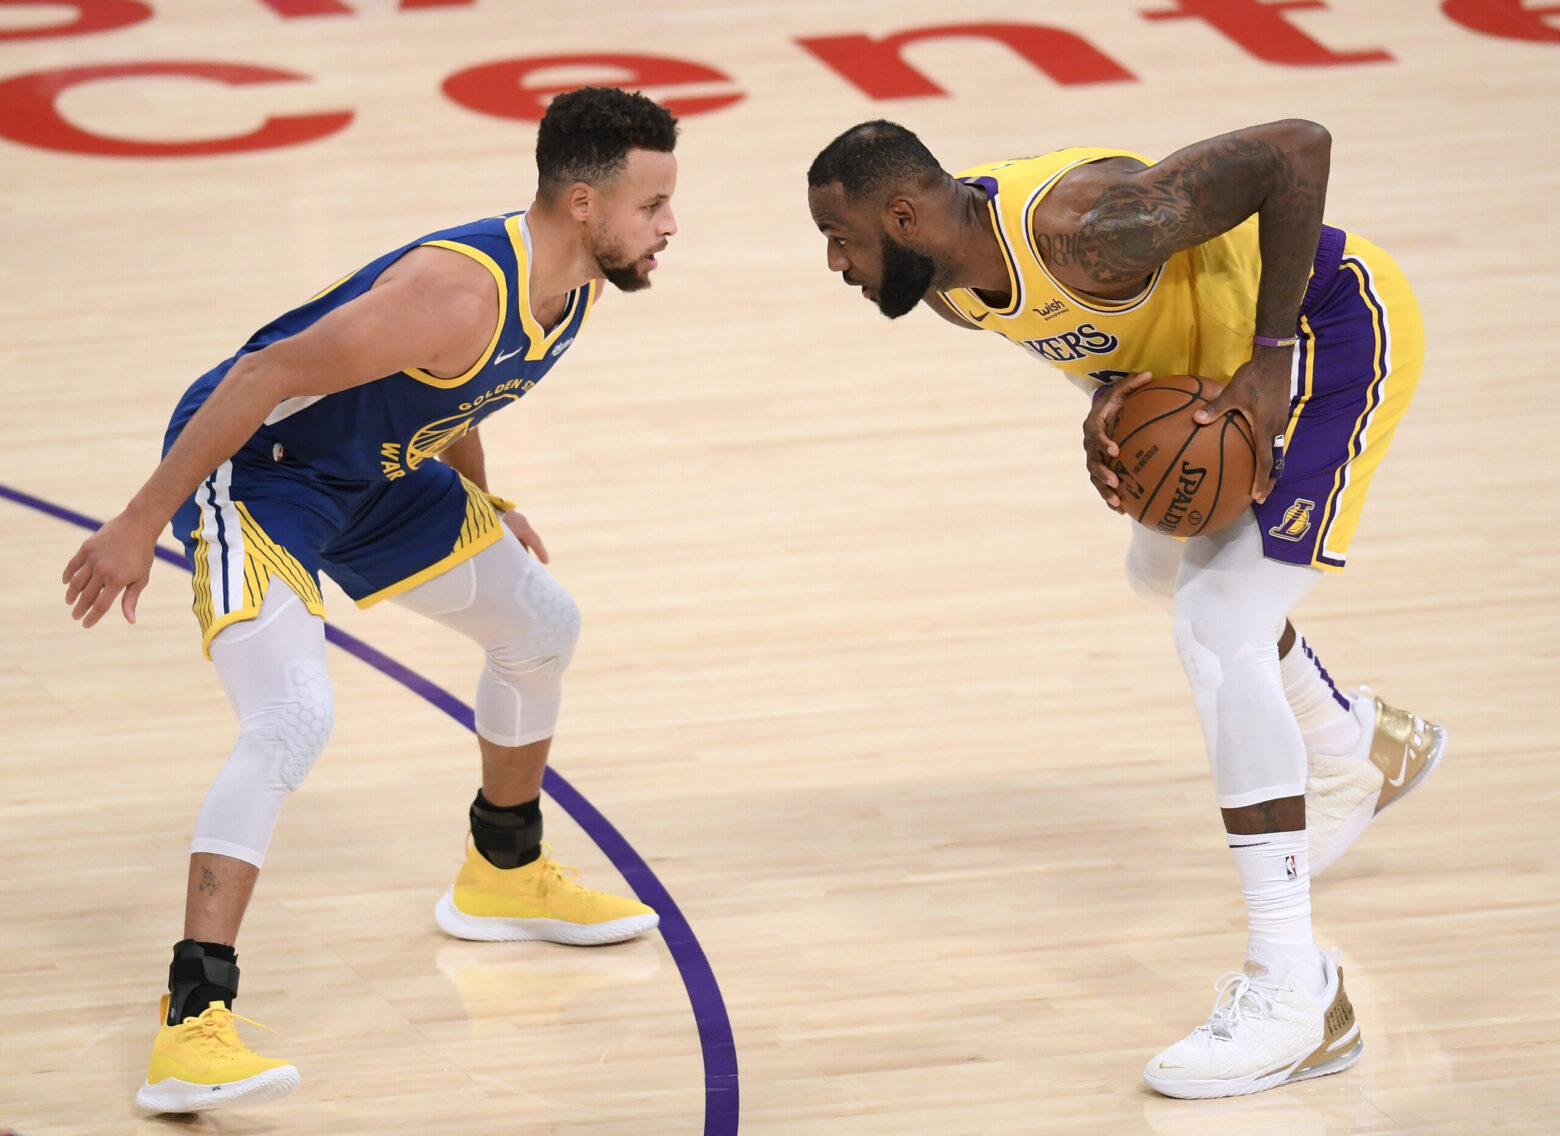 LOS ANGELES, CALIFORNIA - JANUARY 18: LeBron James #23 of the Los Angeles Lakers is guarded by Stephen Curry #30 of the Golden State Warriors during the first half at Staples Center on January 18, 2021 in Los Angeles, California. NOTE TO USER: User expressly acknowledges and agrees that, by downloading and/or using this Photograph, user is consenting to the terms and conditions of the Getty Images License Agreement. Mandatory Copyright Notice: Copyright 2021 NBAE